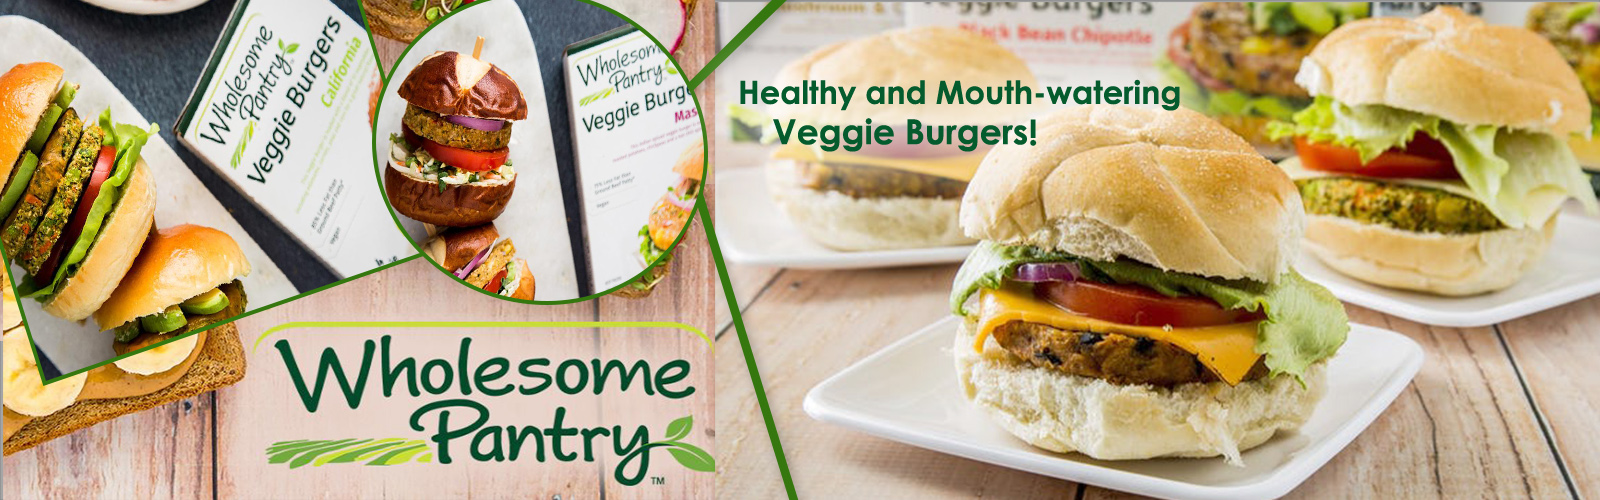 Wholesome Pantry Veggie Burger